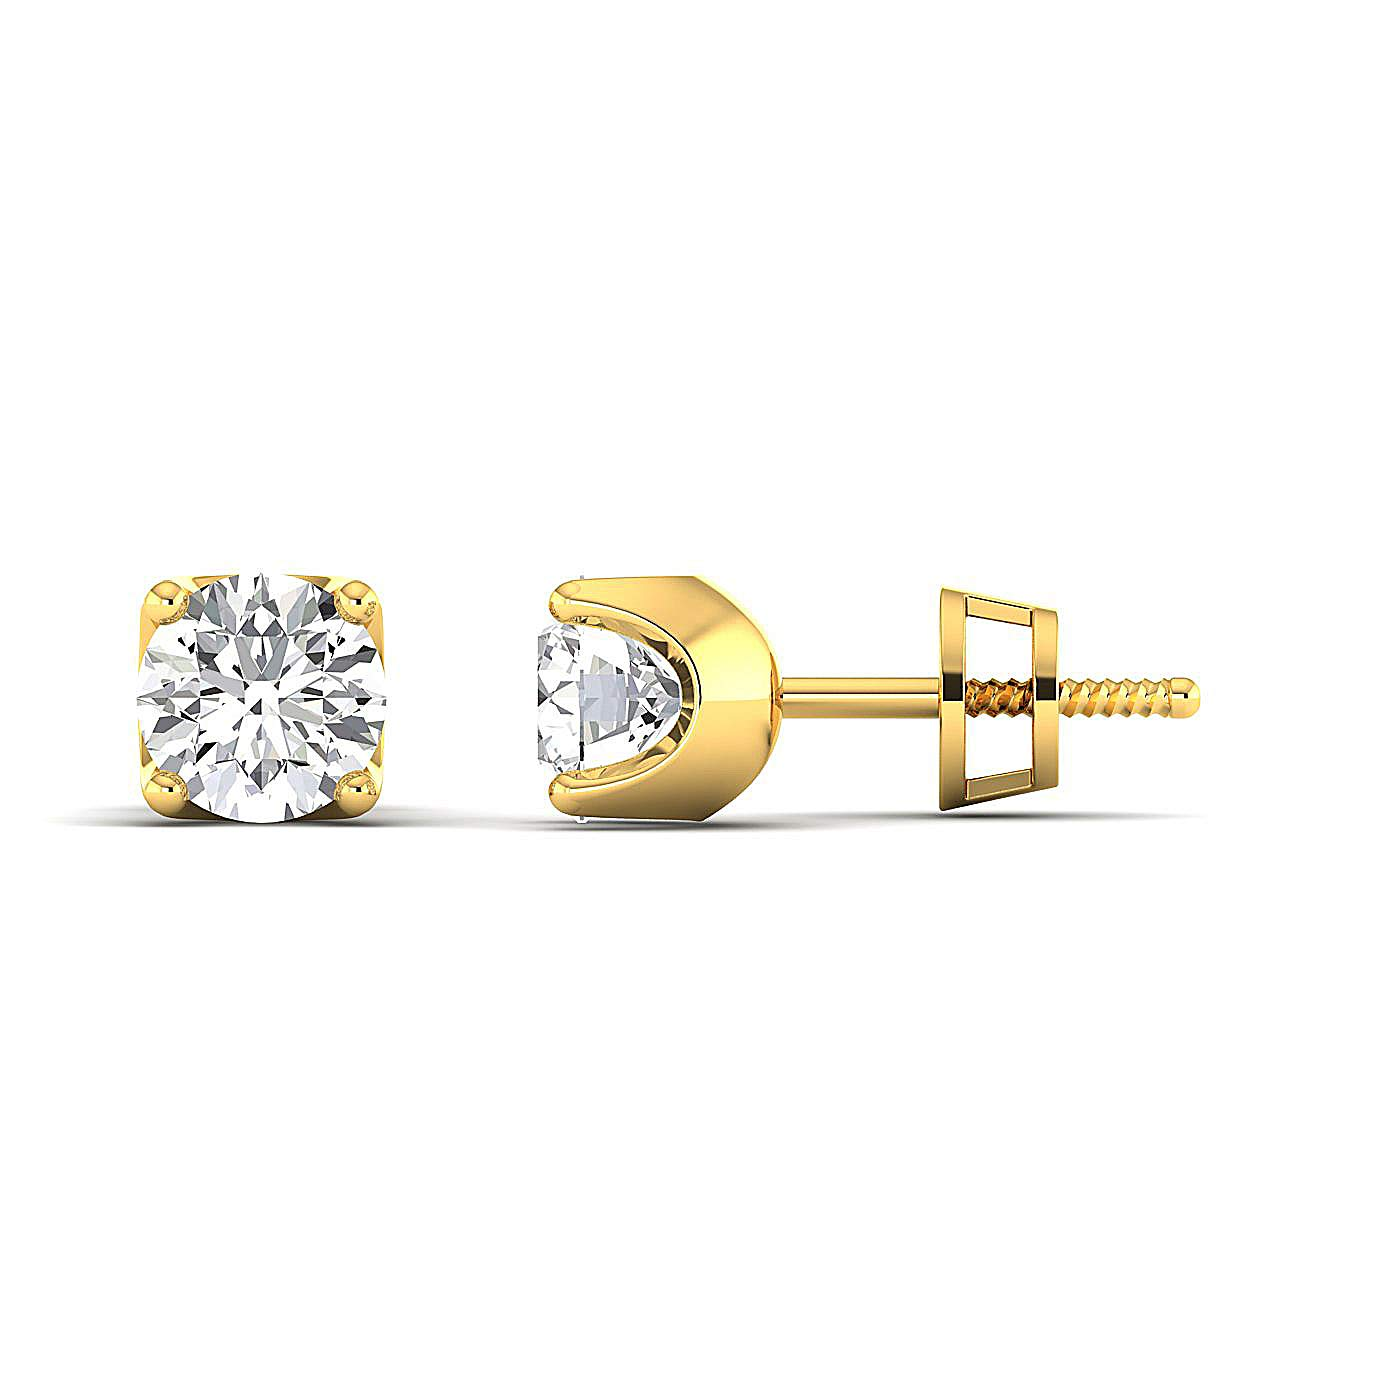 Diamond Stud Earrings Diamond Earrings 0.30 to 4 Carat 100/% Pure Diamond Earrings Lab Created Diamond Earrings SI-FG, Round Brilliant Diamond Jewelry Gift for Women